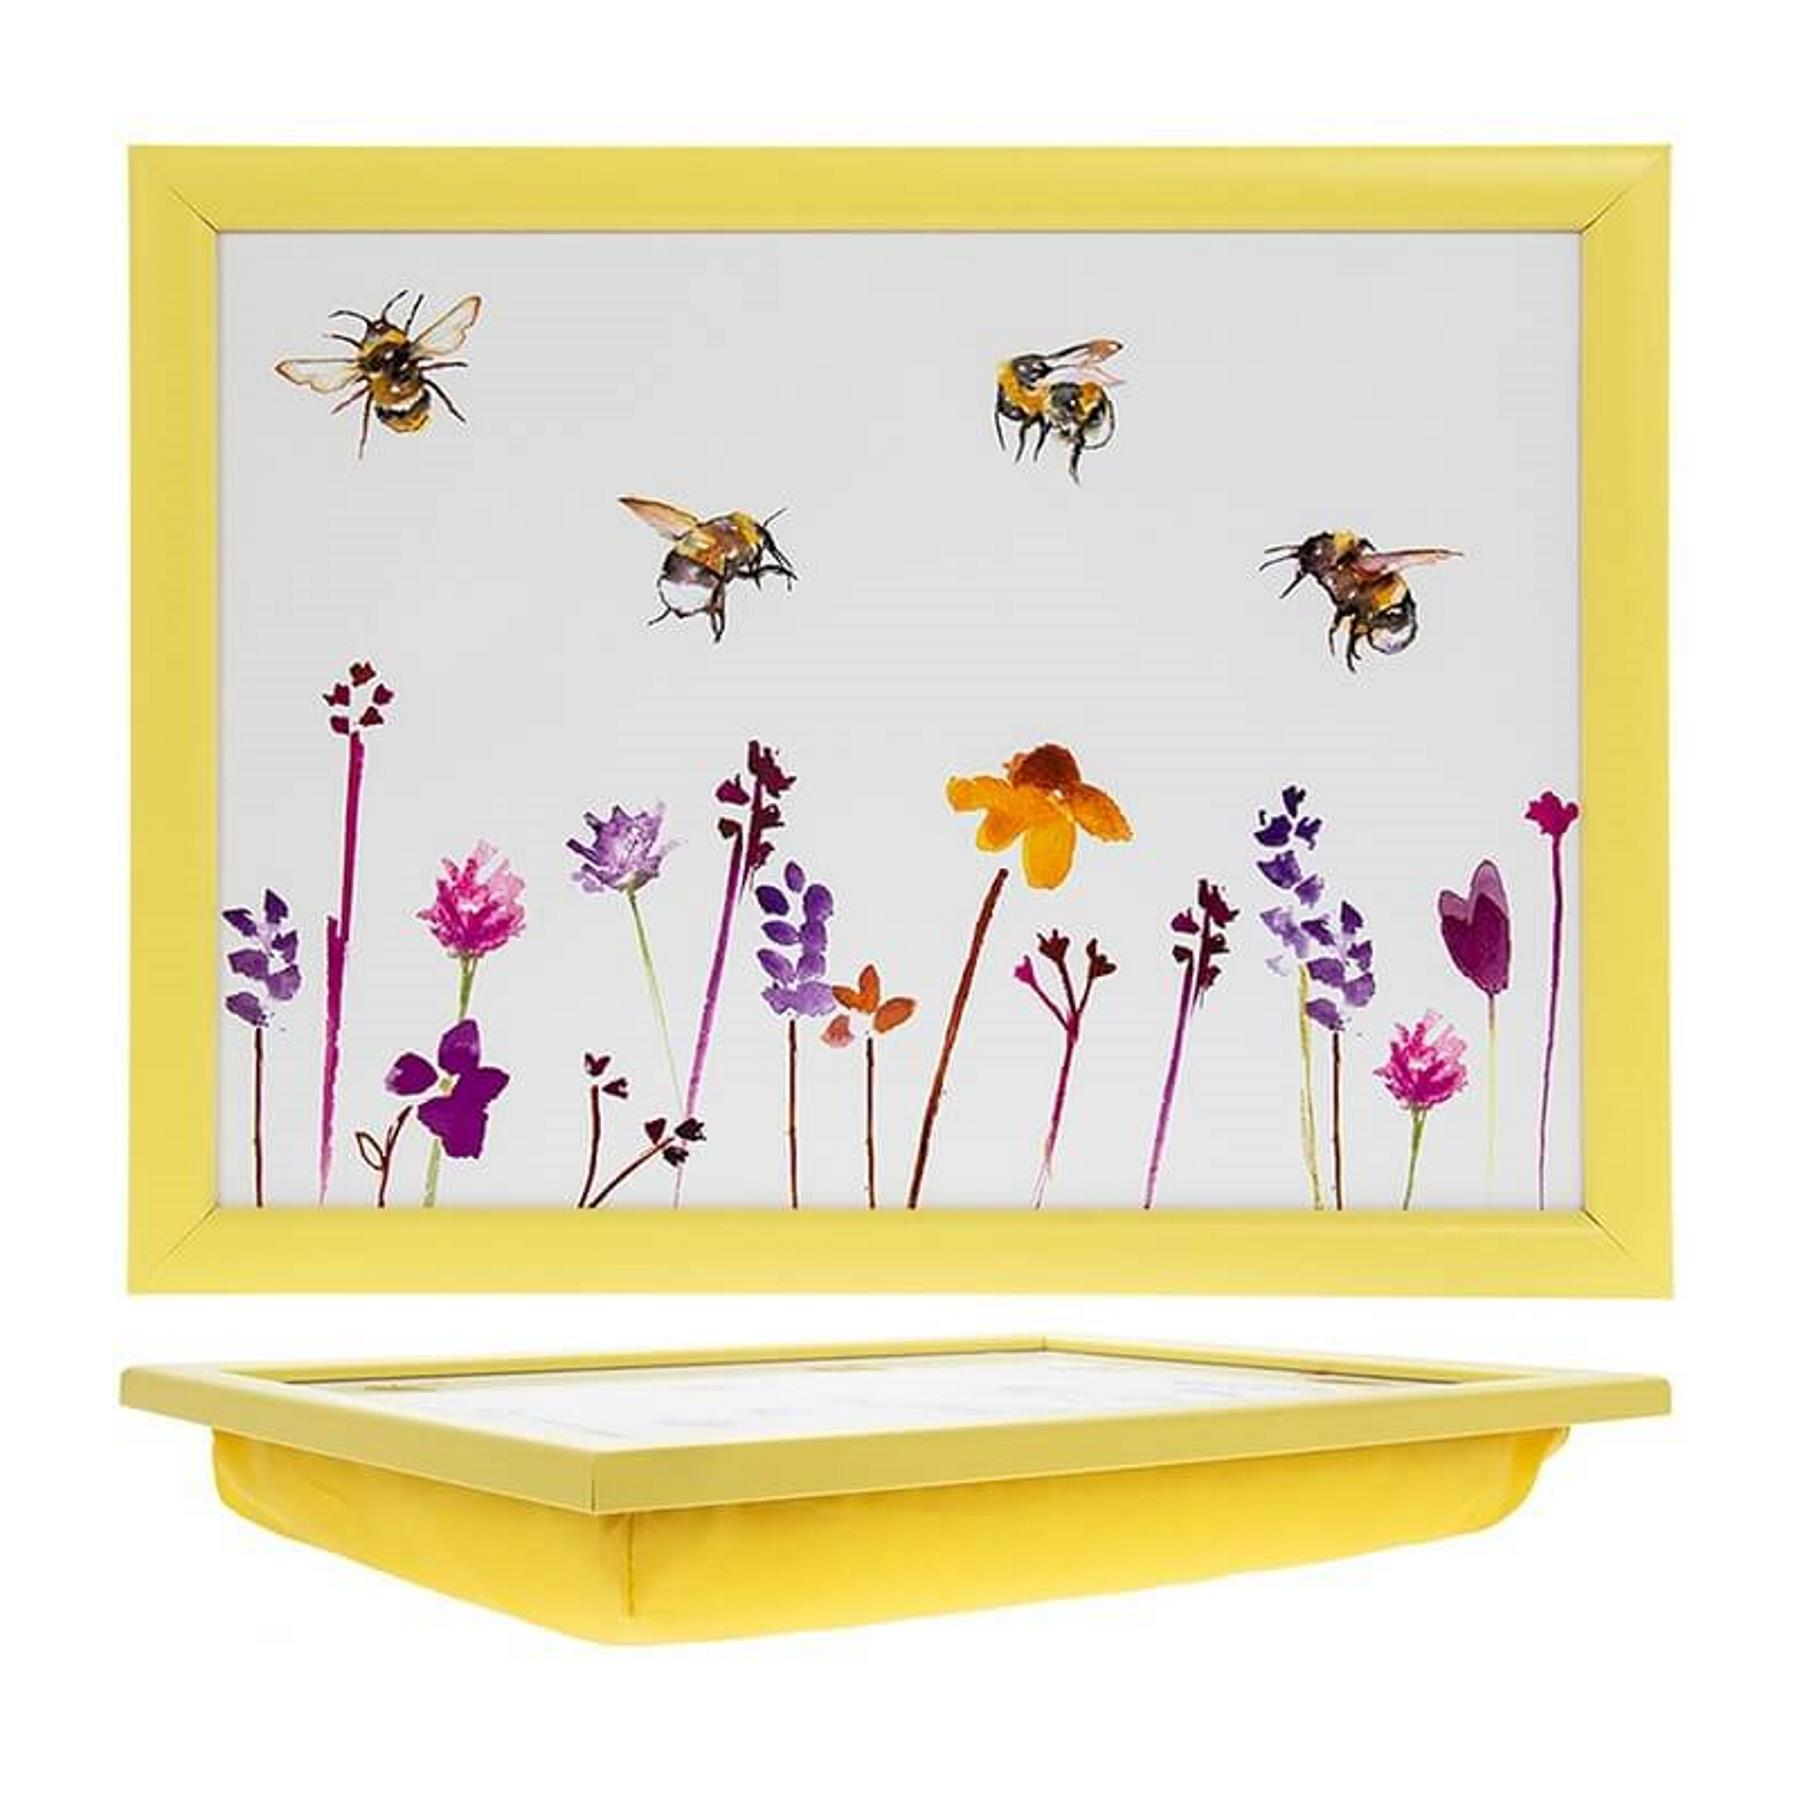 Terrific Details About Busy Bees Floral Lap Tray Bean Bag Laptray Cushion Laptop Dinner Padded Trays Forskolin Free Trial Chair Design Images Forskolin Free Trialorg